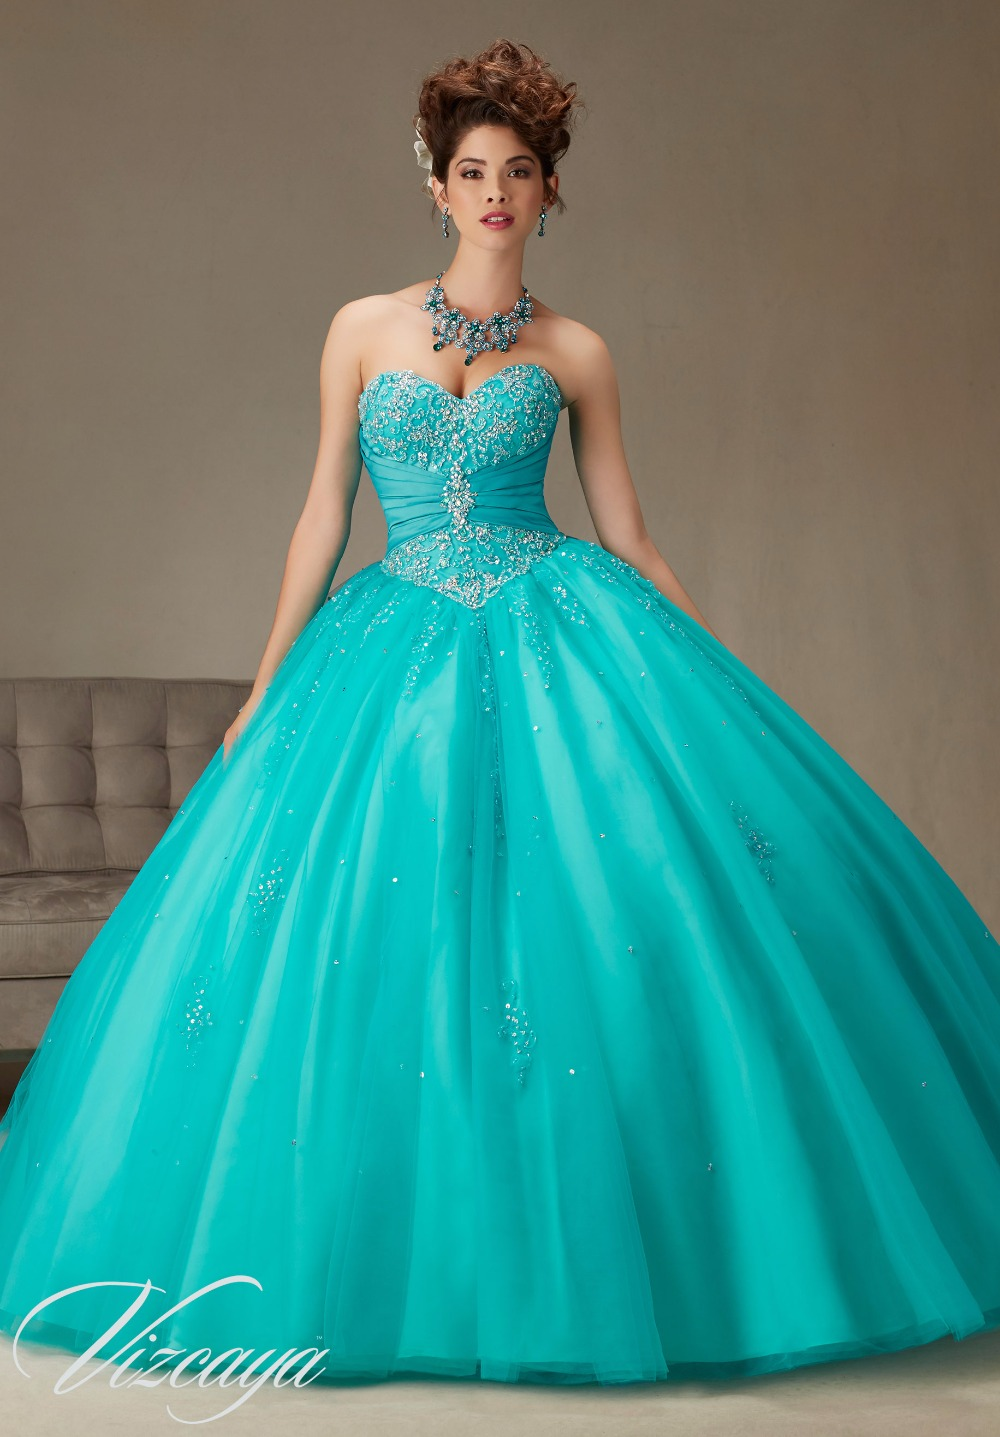 Free Shipping Teal/Aqua Two tone Satin and Tulle Ball Gown with ...